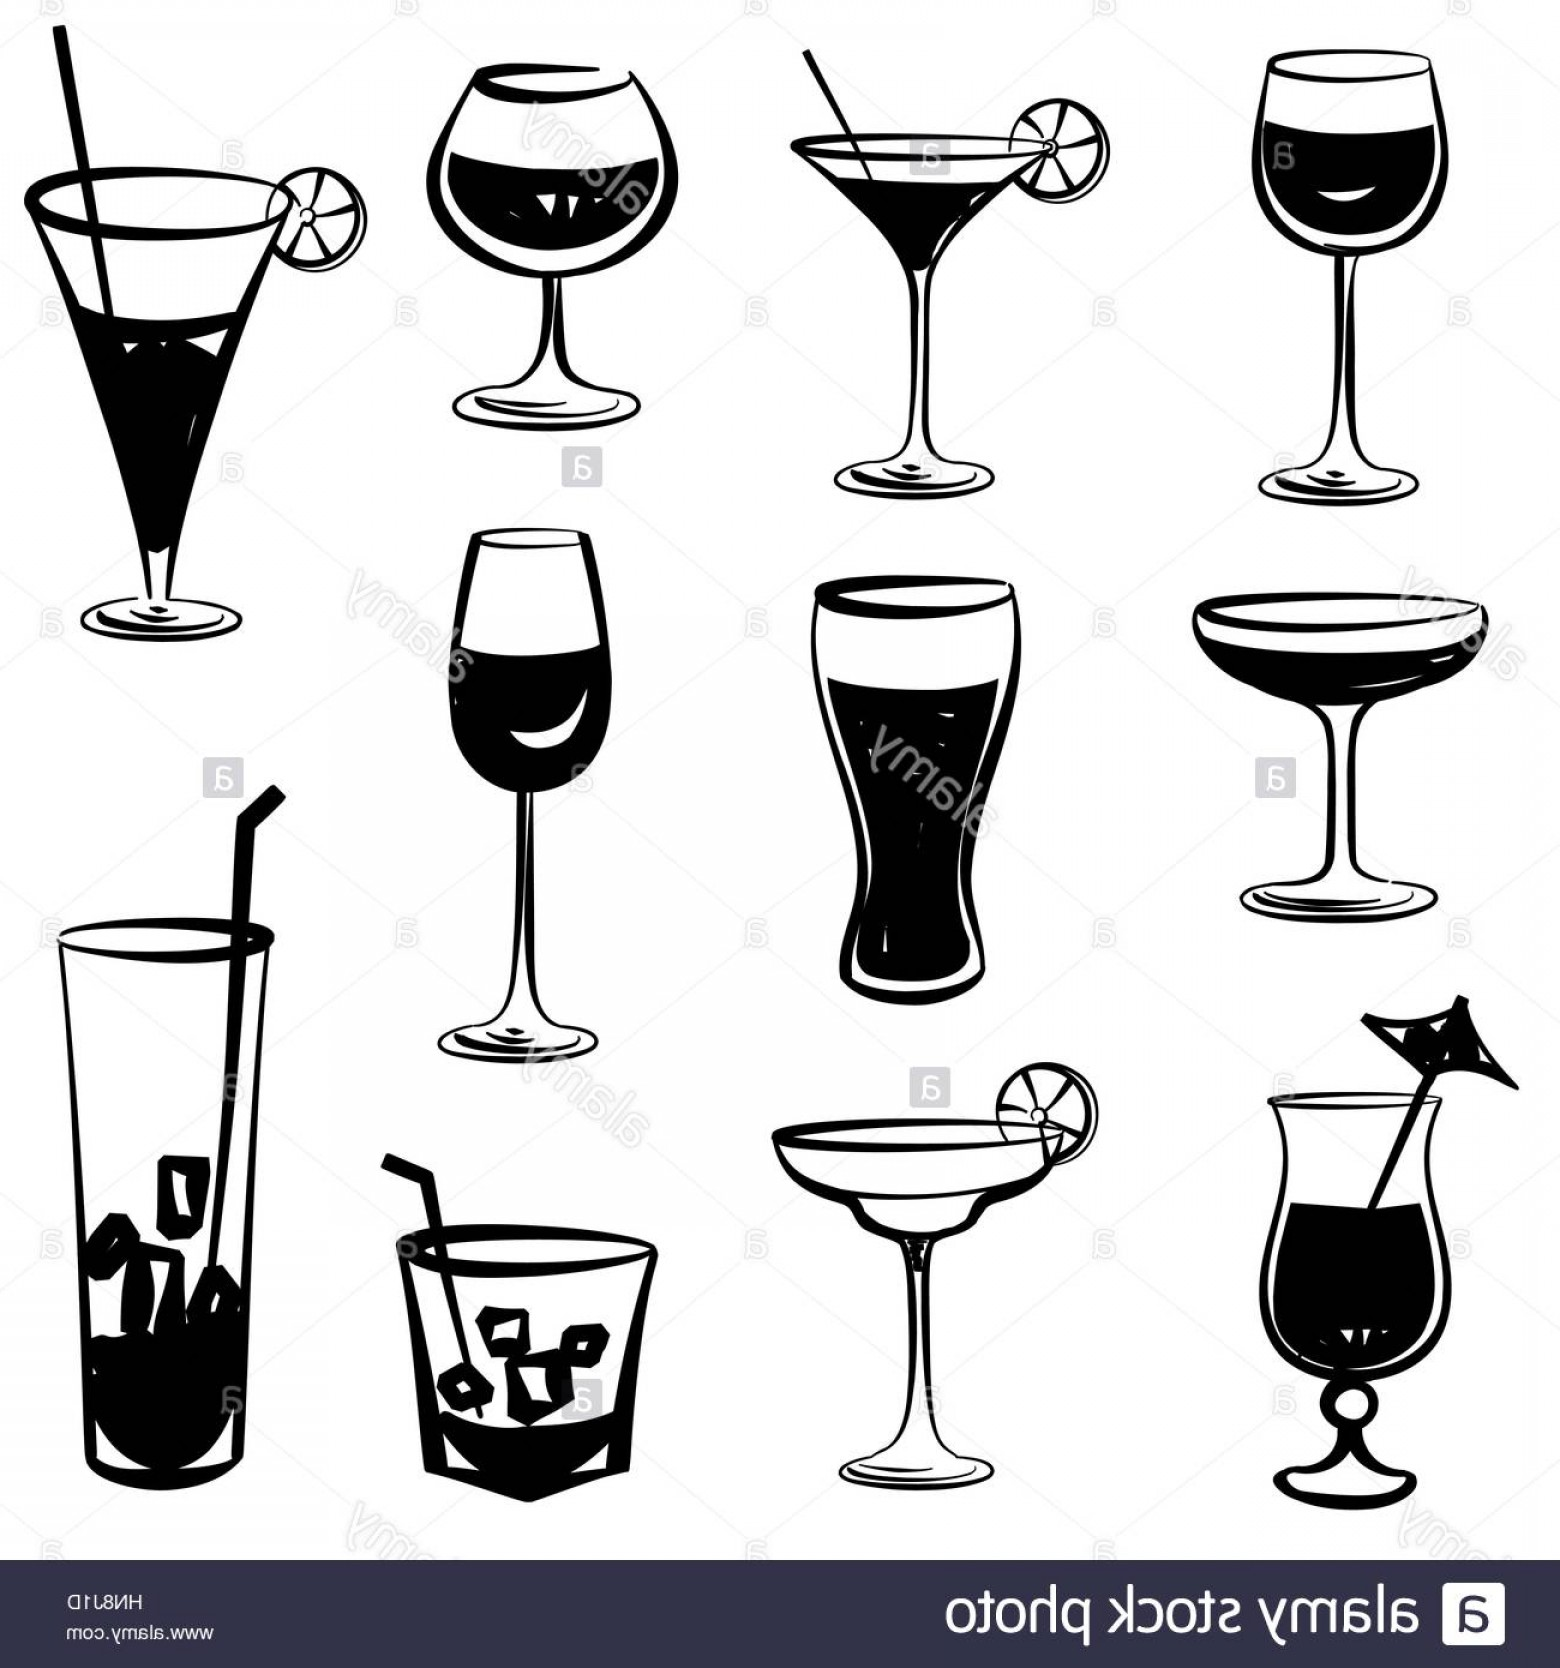 Cocktail Glasses Vector Art Decor: Stock Photo Glass Vector Silhouette Collection Set Of Different Cocktail Drinks